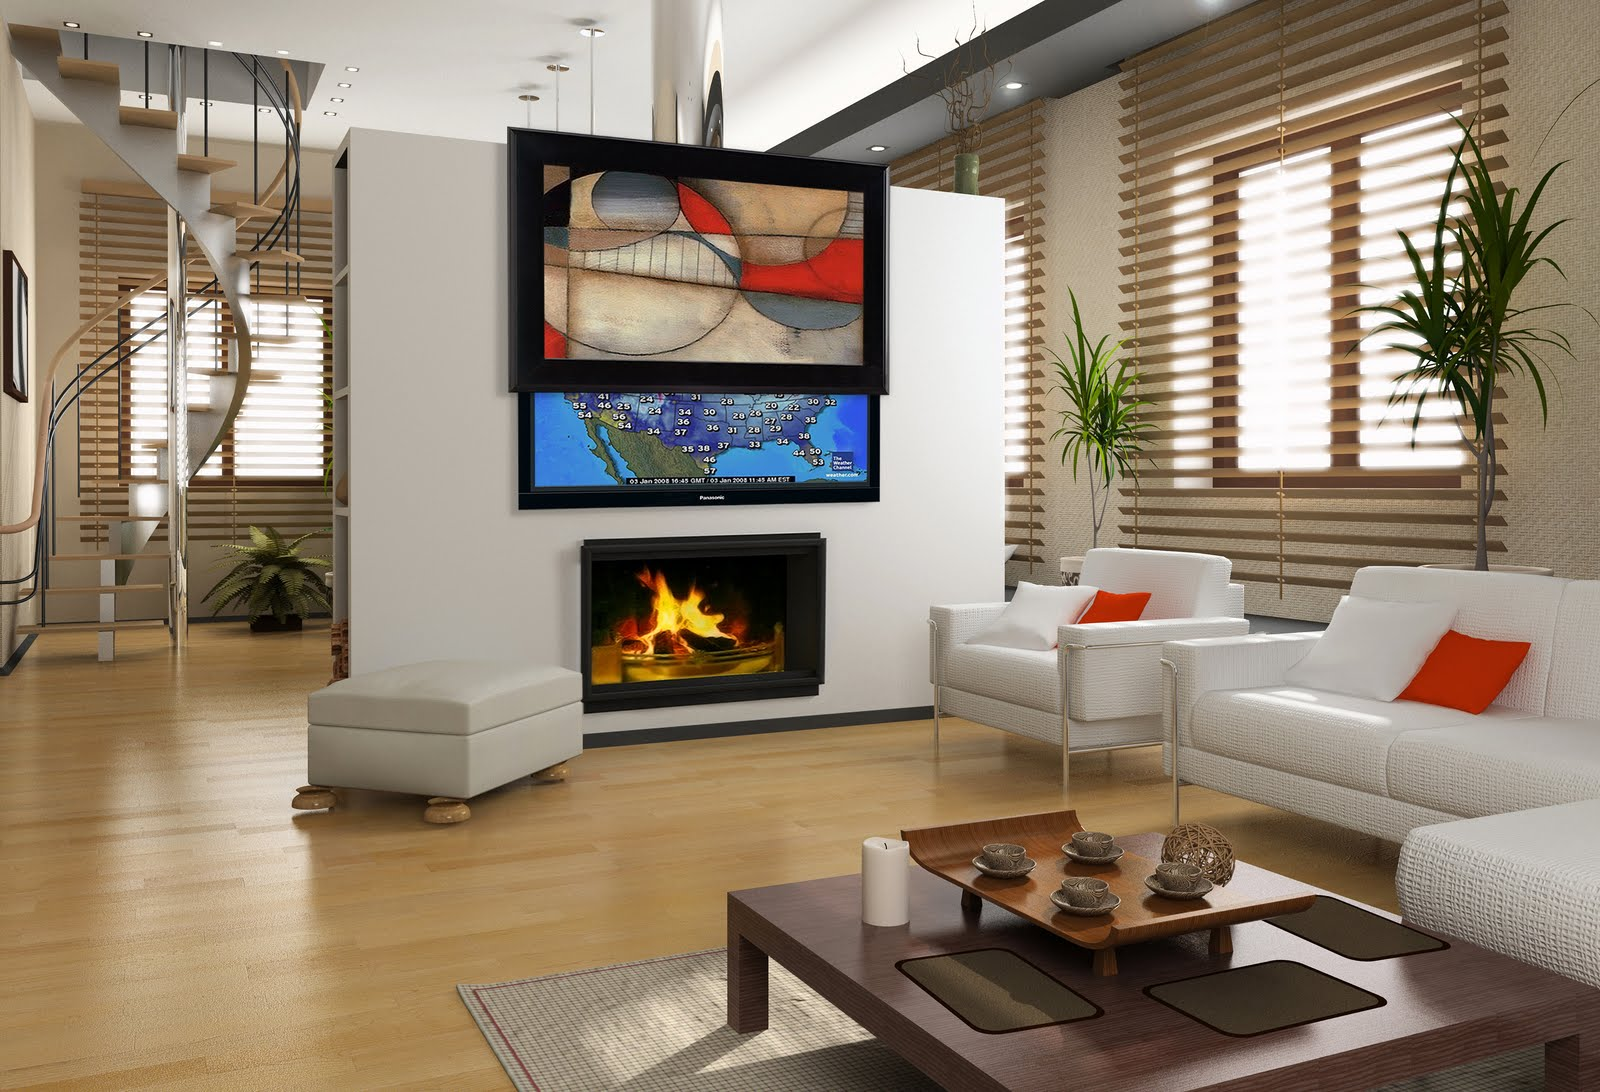 Living Rooms With Stunning Tv Solutions All Ture Designs. Living Room Setup With No Tv   Bohlerint com